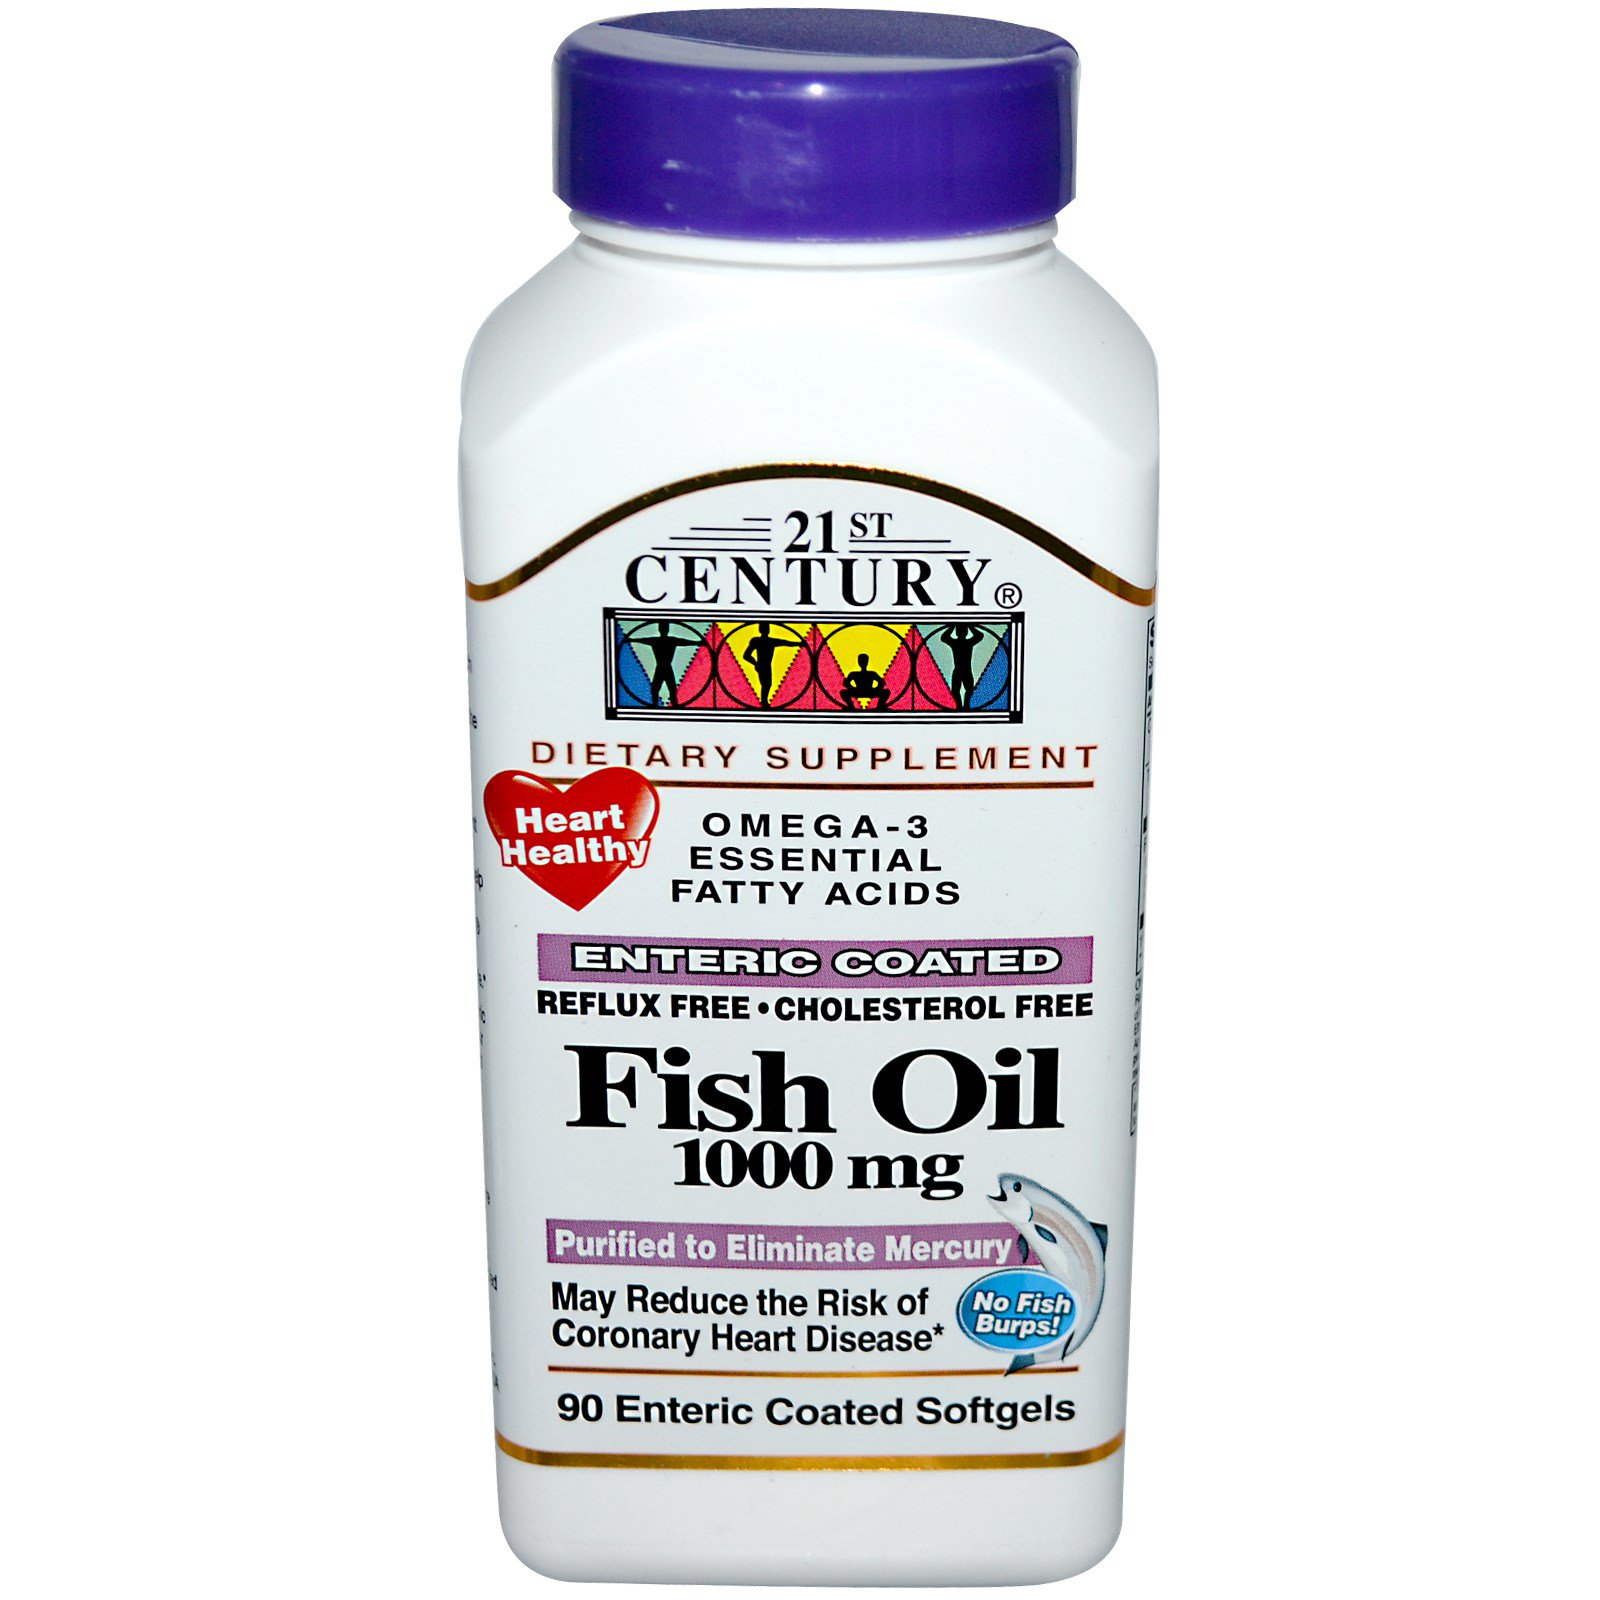 21st century fish oil 1000 mg 90 enteric coated for Enteric coated fish oil